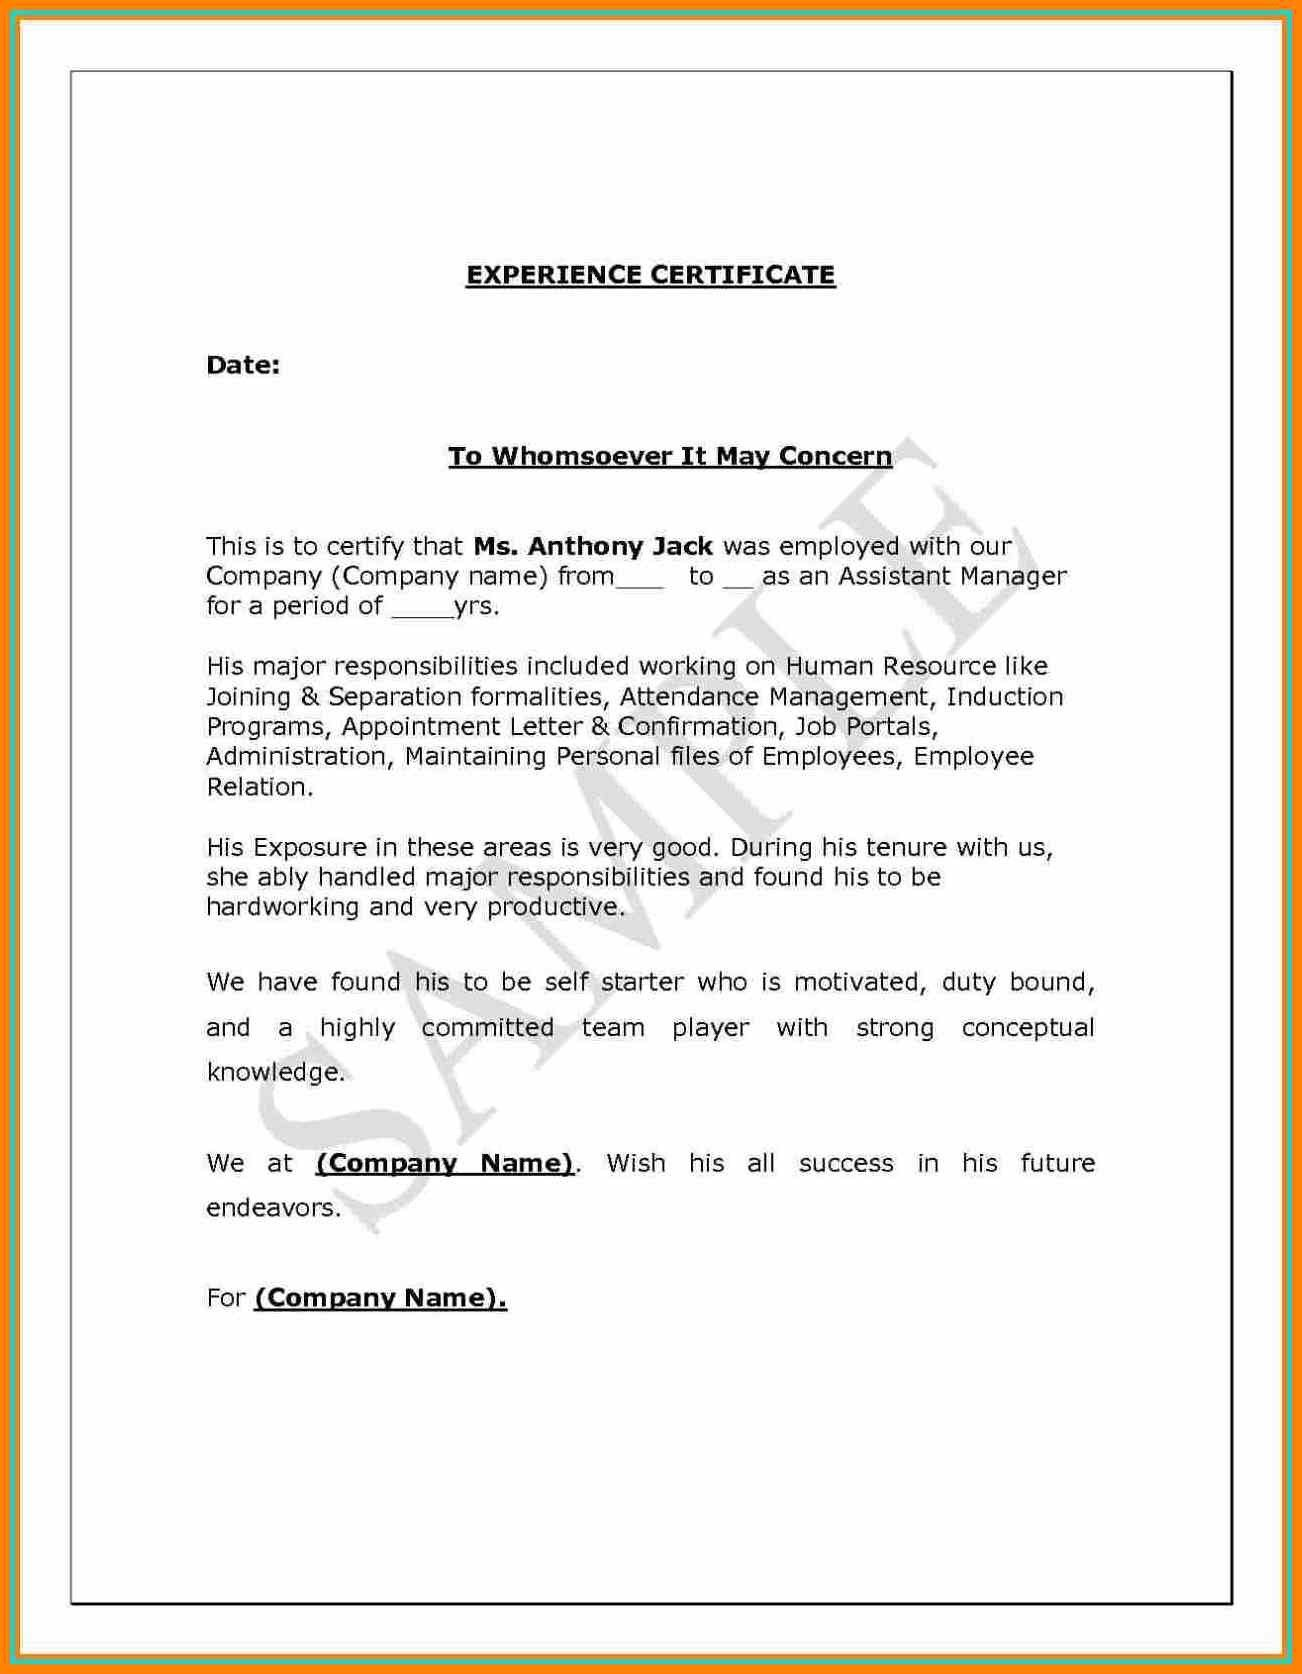 experience certificate sample for electrician fresh elegant experience certificate formats mitocadorcoreano fresh job experience certificate format pdf